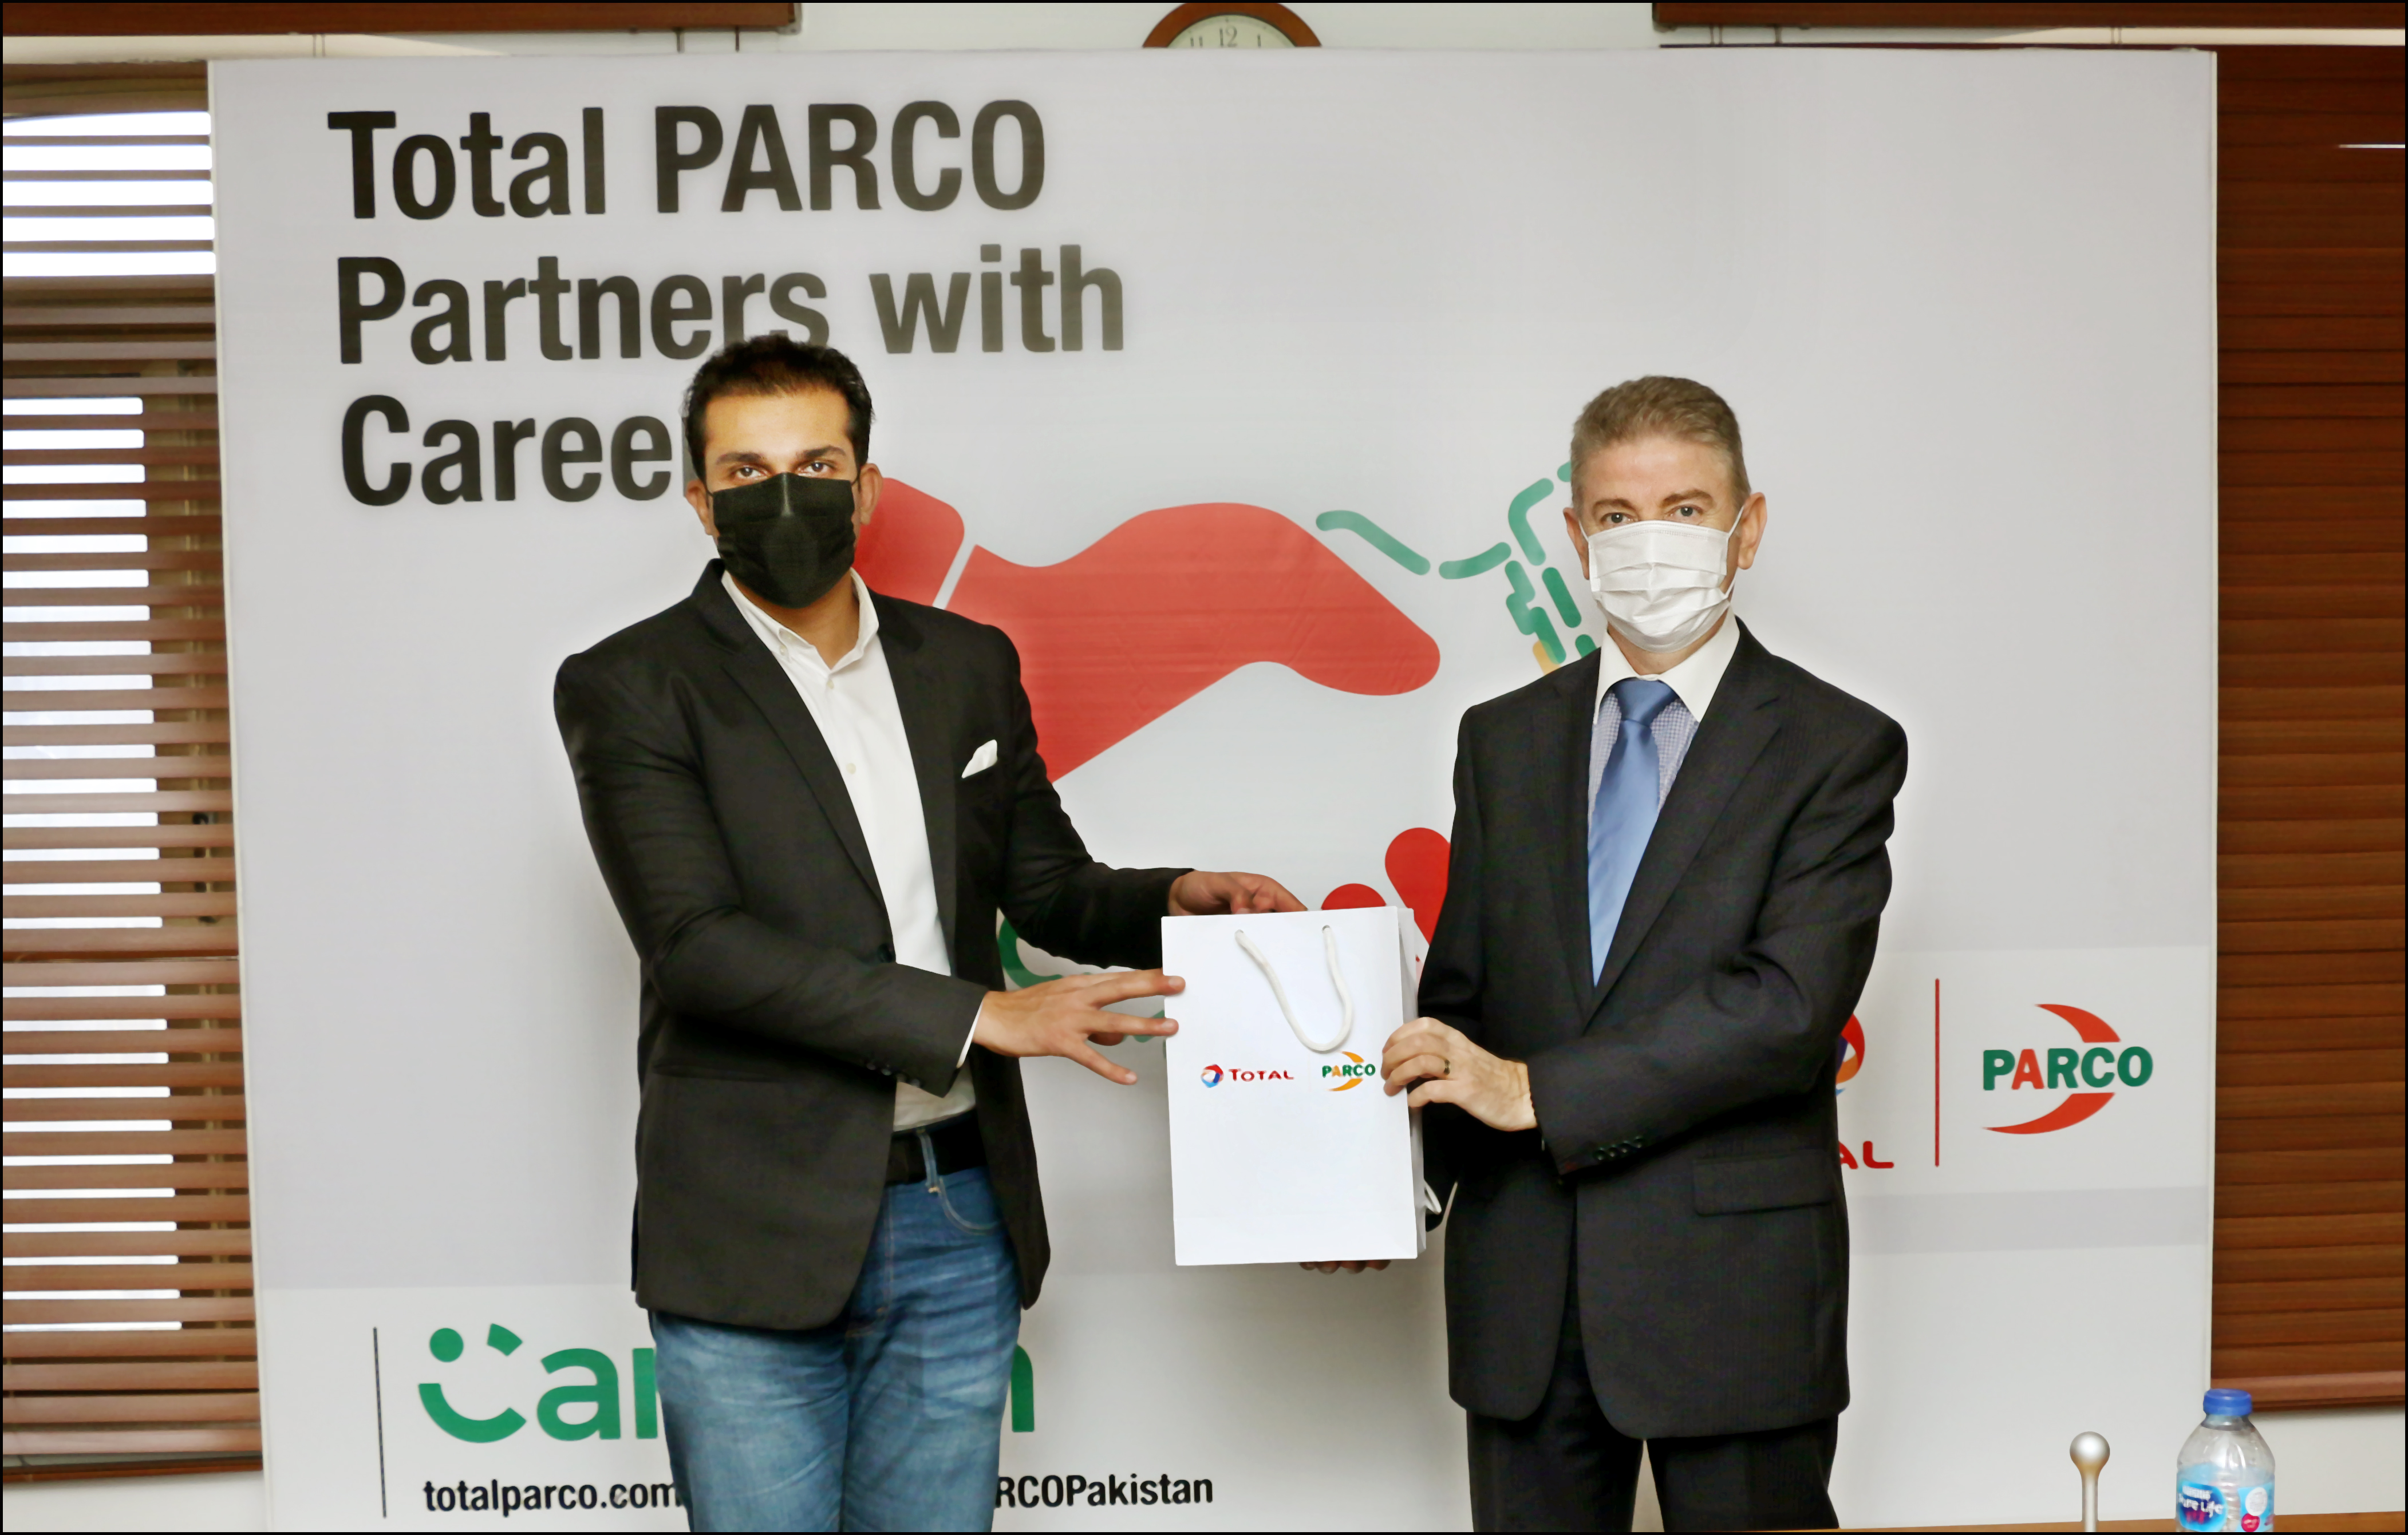 Total Parco partners with careem to provide its captains with speedy mobility solutions